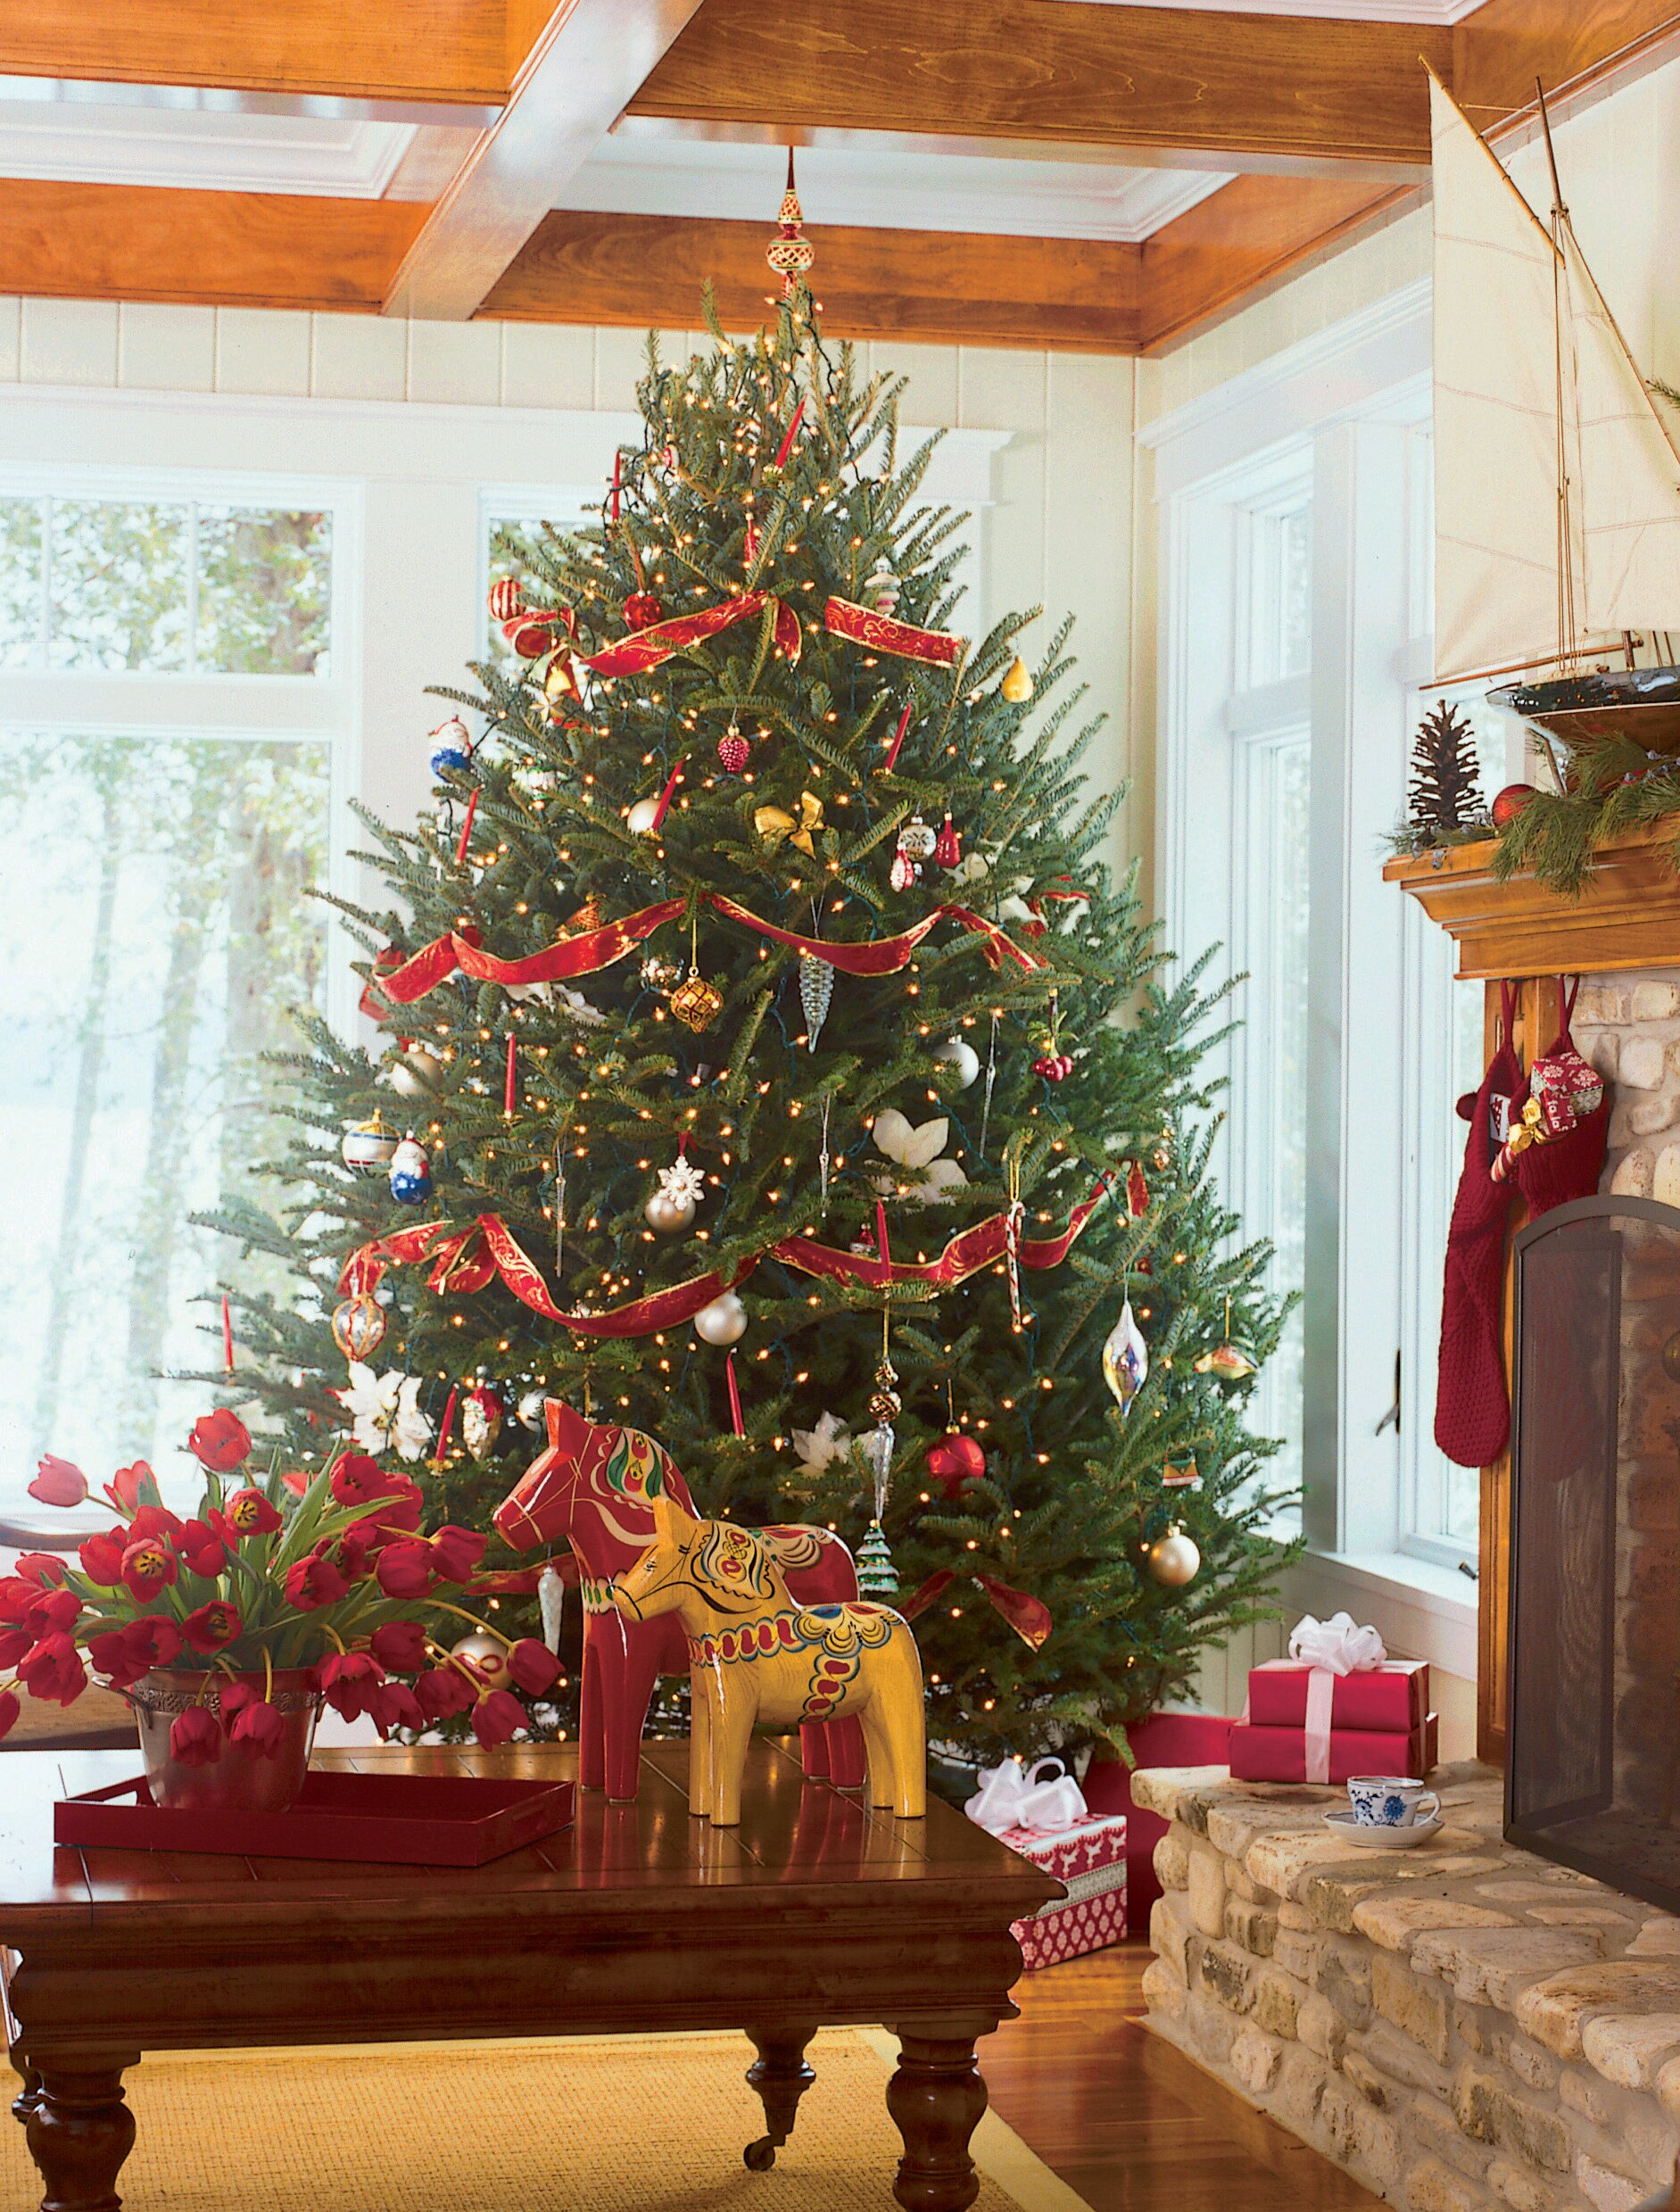 Christmas Tree Decorations Ideas.Christmas Tree Decorating Ideas Midwest Living